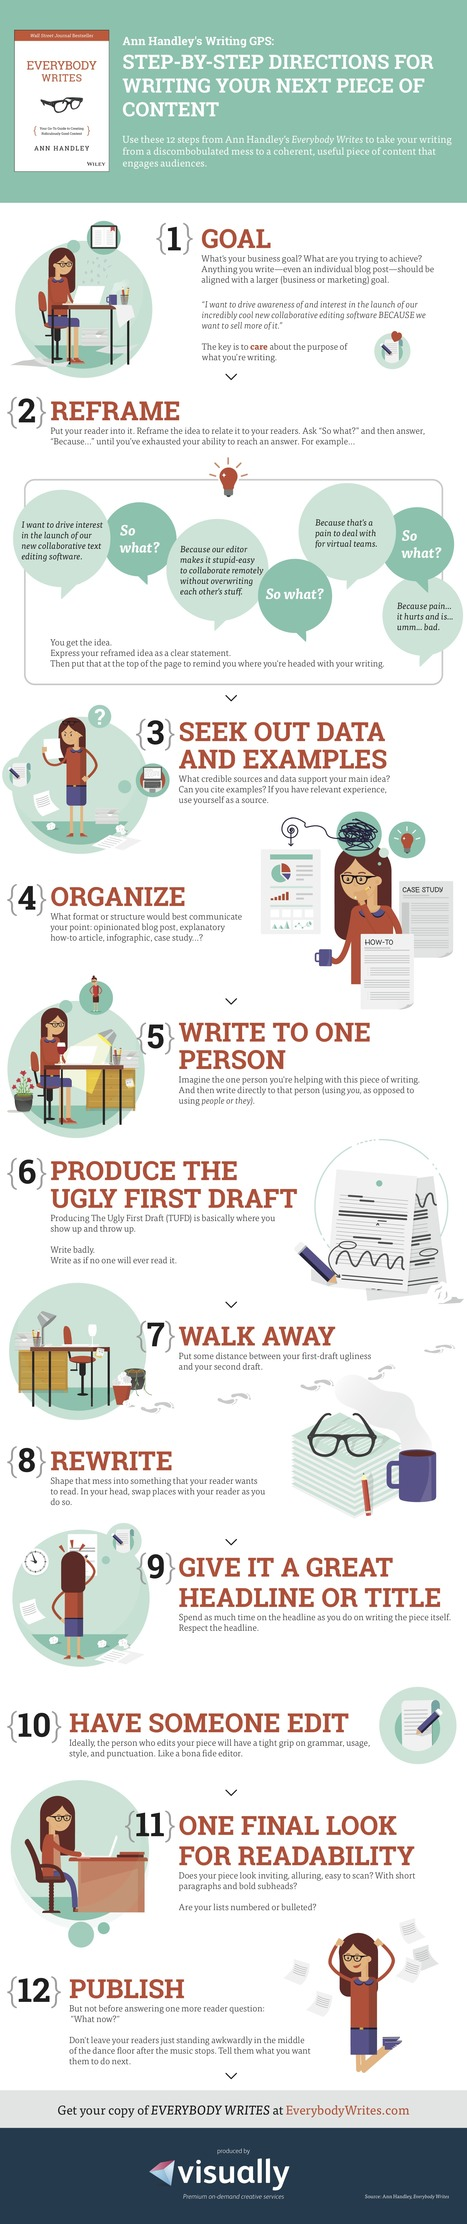 How to Write a Piece of Content From Conception to Publication - Infographic | Uppdrag : Skolbibliotek | Scoop.it